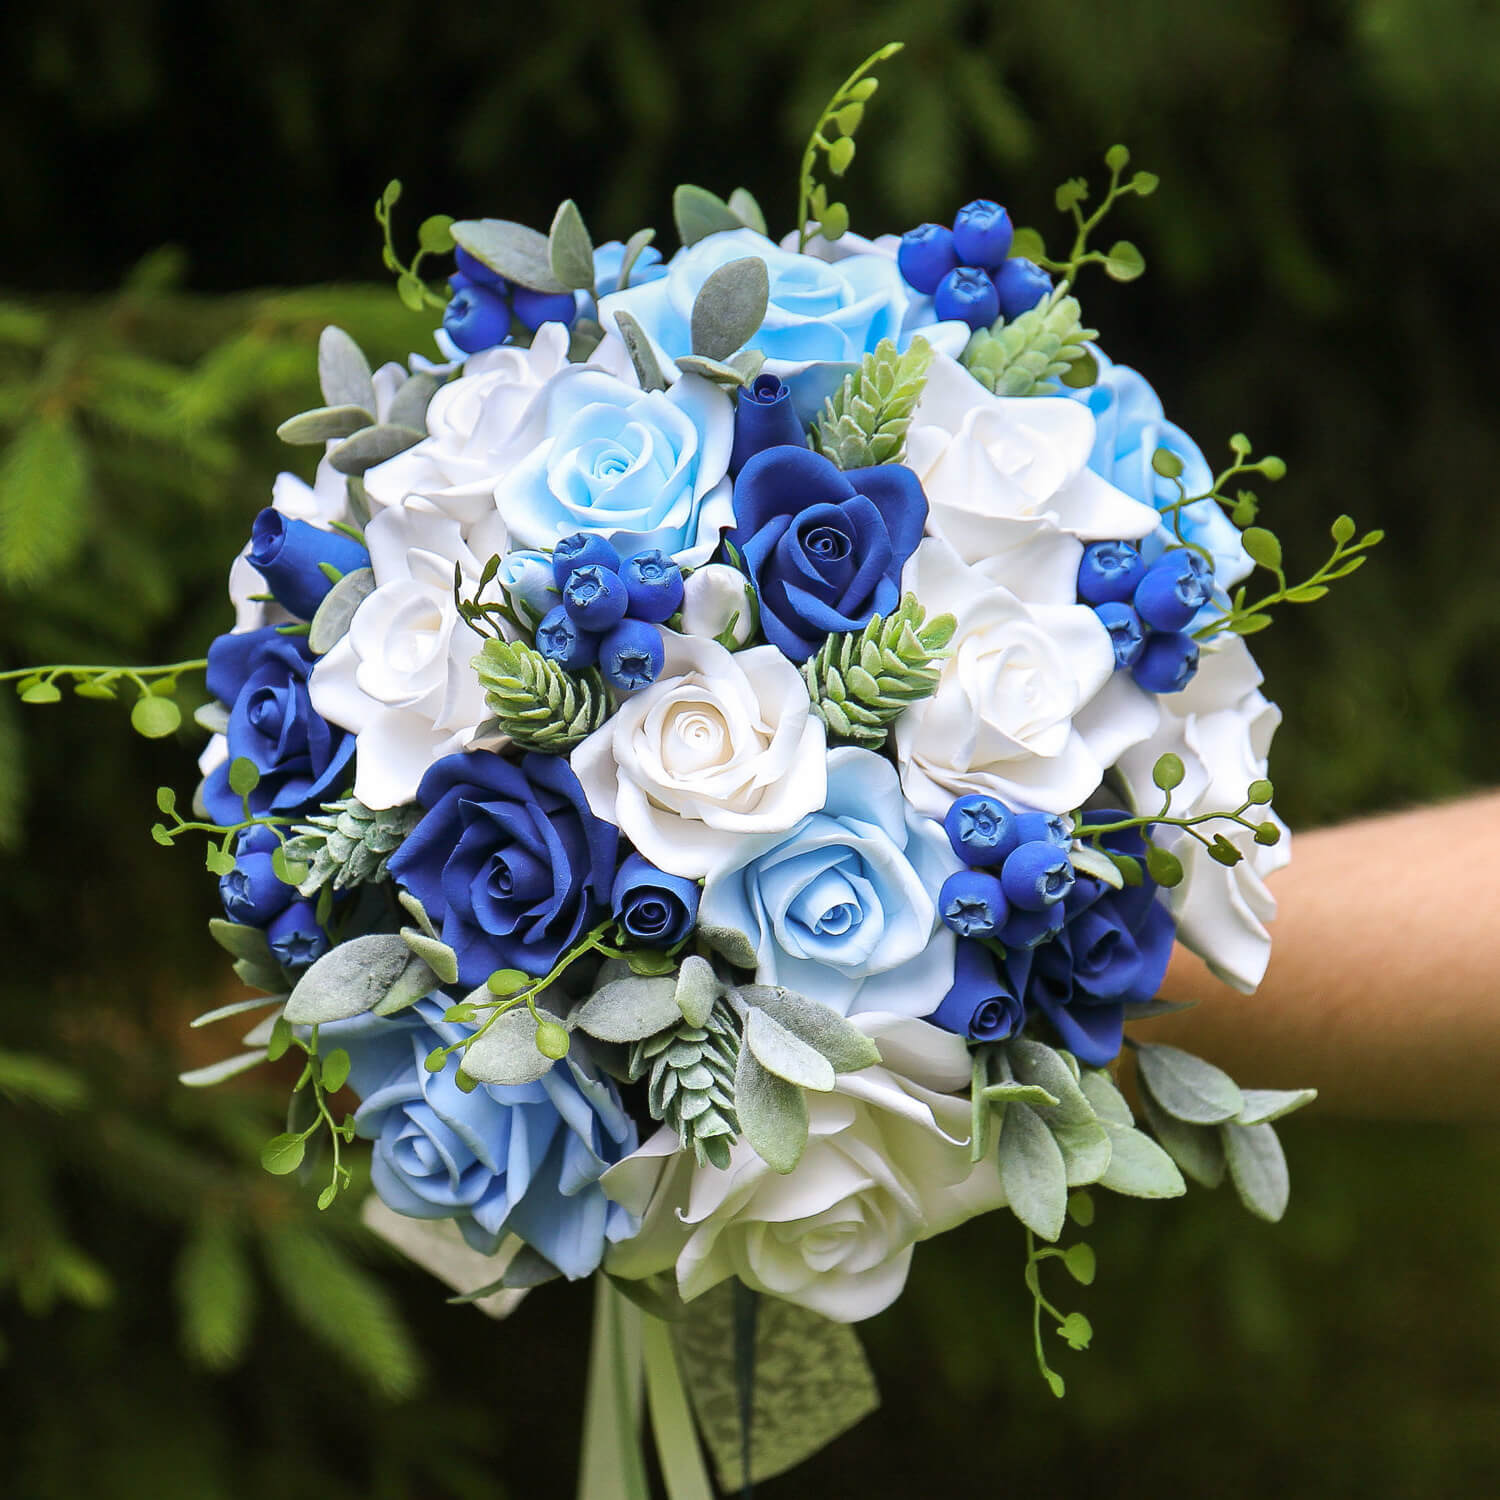 Blue Roses Wedding Bouquet - Handmade With Love